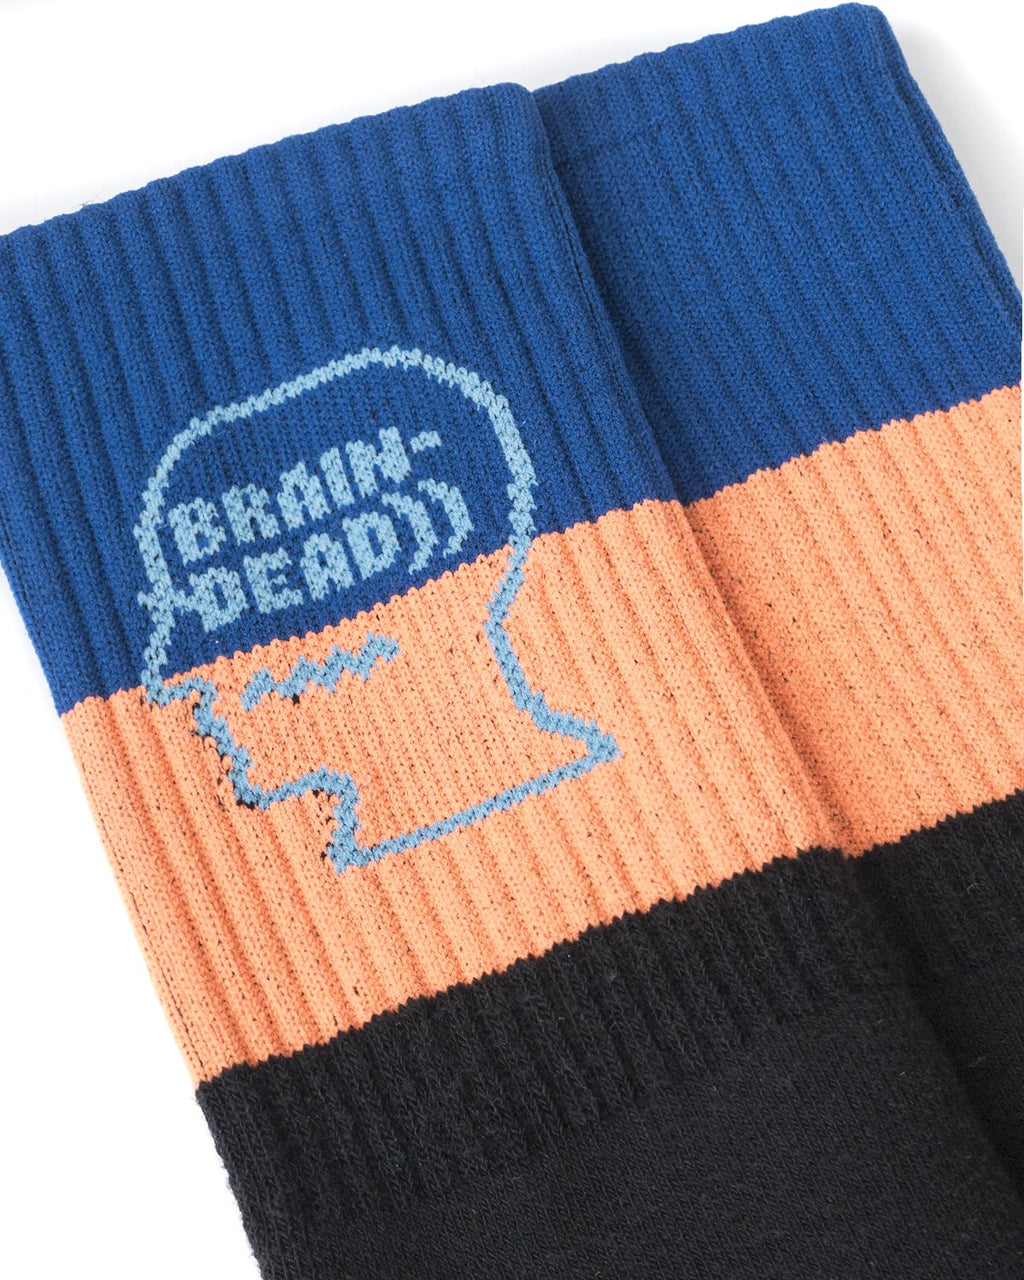 STRIPED LOGO HEAD SOCK - BLUE/ORANGE/BLACK